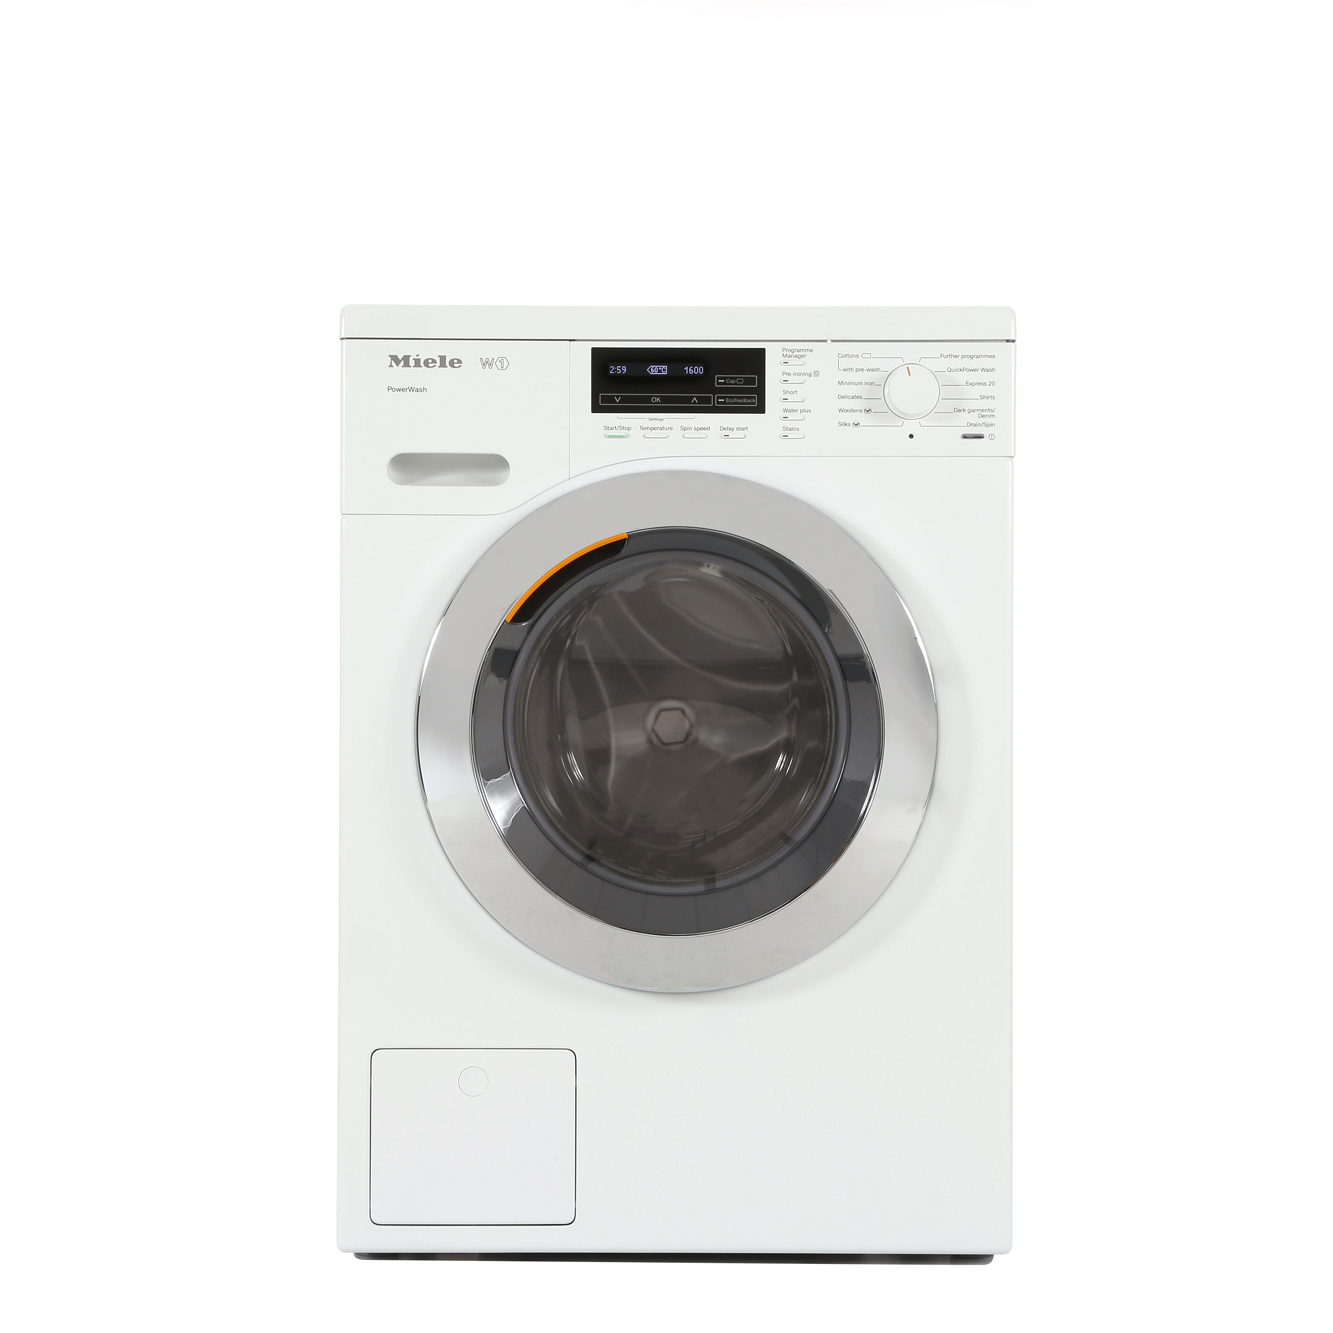 buy miele w1 chromeedition wkf120 washing machine wkf120 lotus white marks electrical. Black Bedroom Furniture Sets. Home Design Ideas